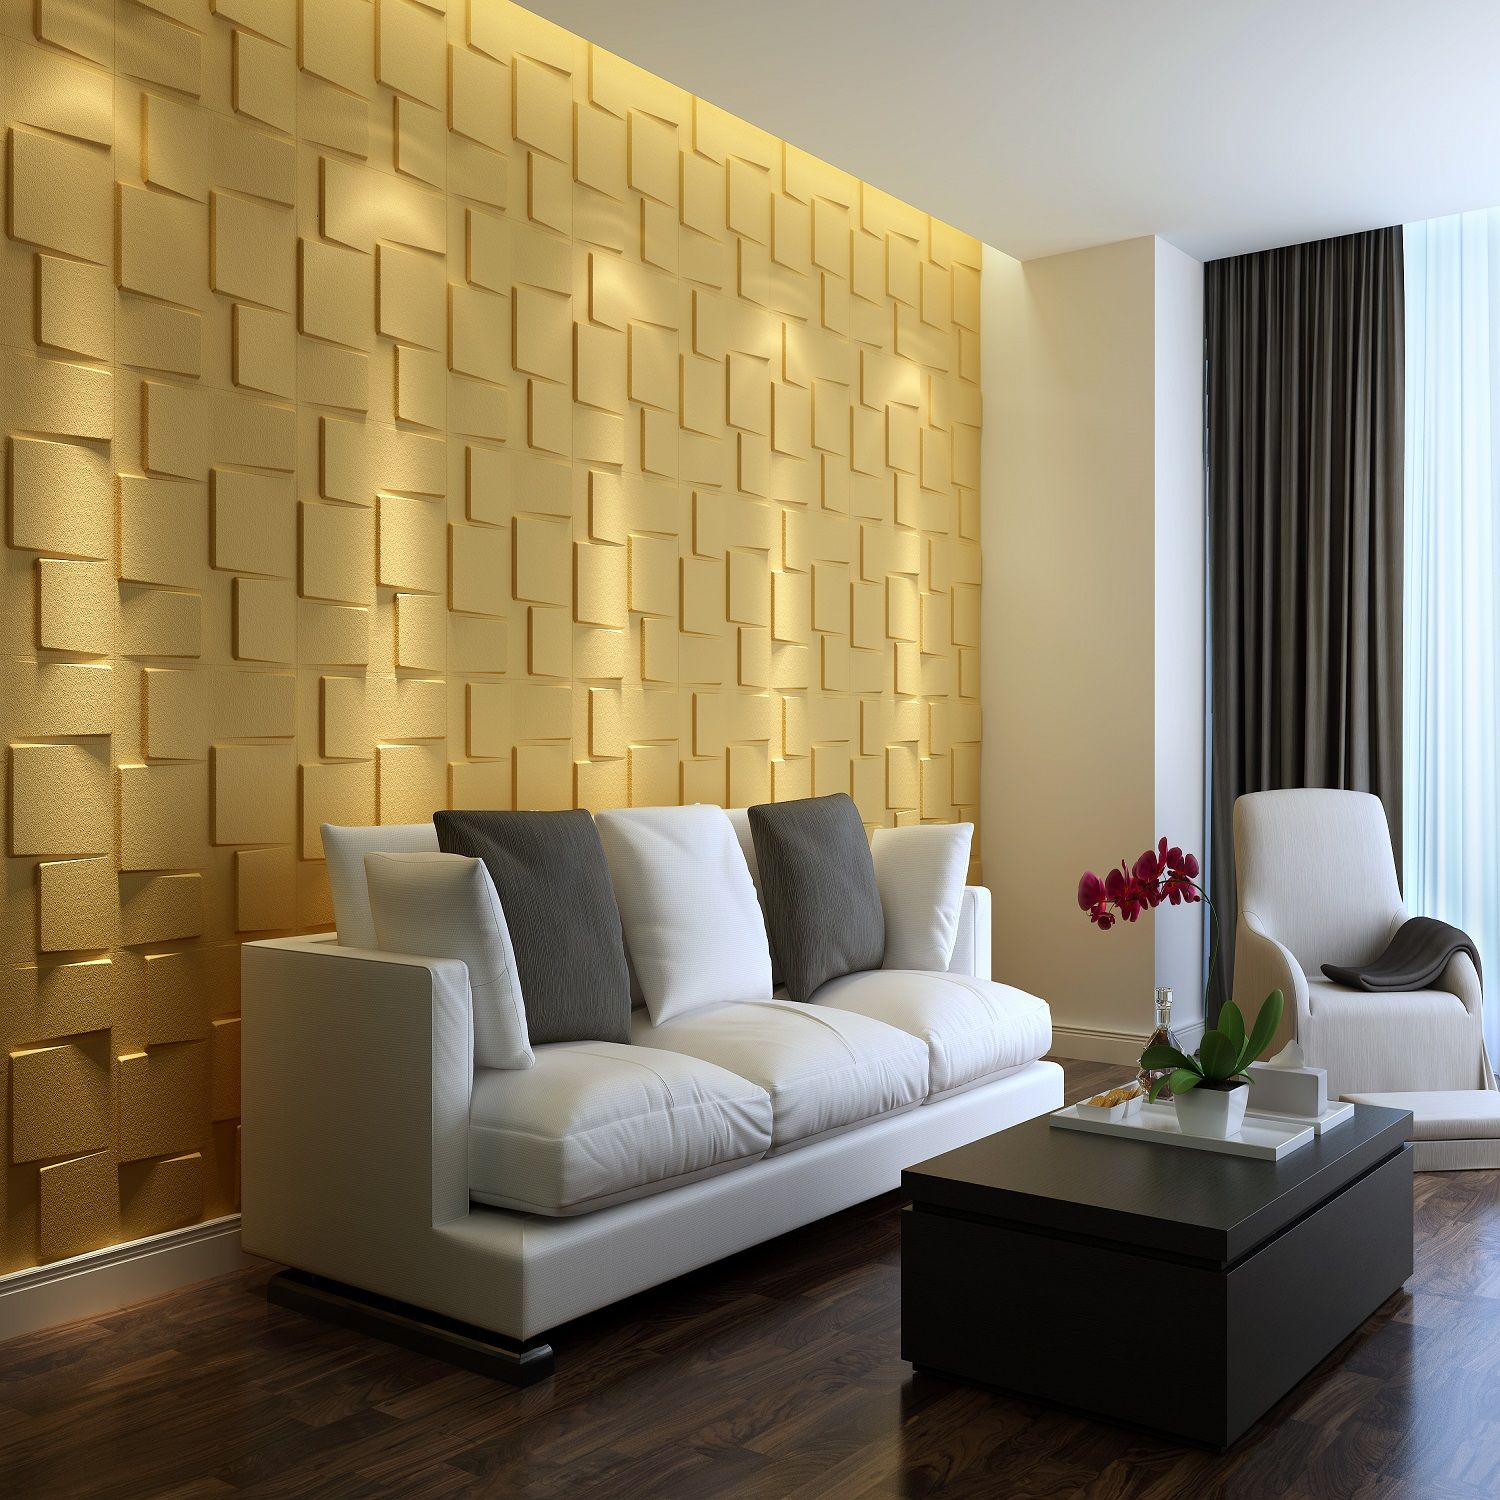 Stunning Decorative Wall Panels 3d Ideas - The Wall Art Decorations ...